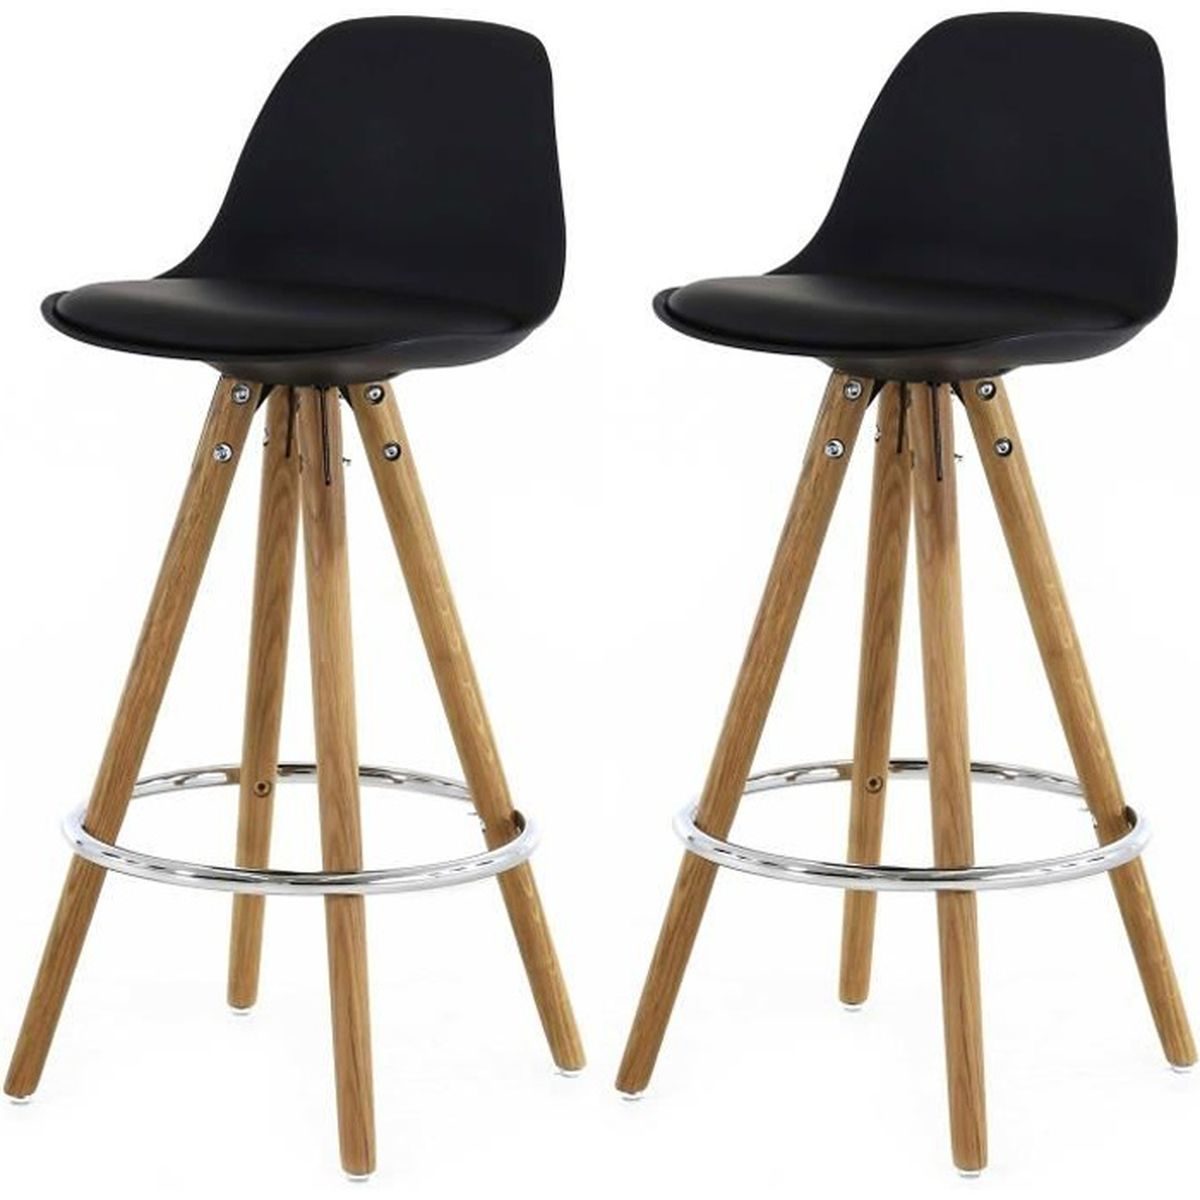 lot de 2 tabourets de bar scandinaves noir uma achat vente tabouret de bar noir soldes. Black Bedroom Furniture Sets. Home Design Ideas